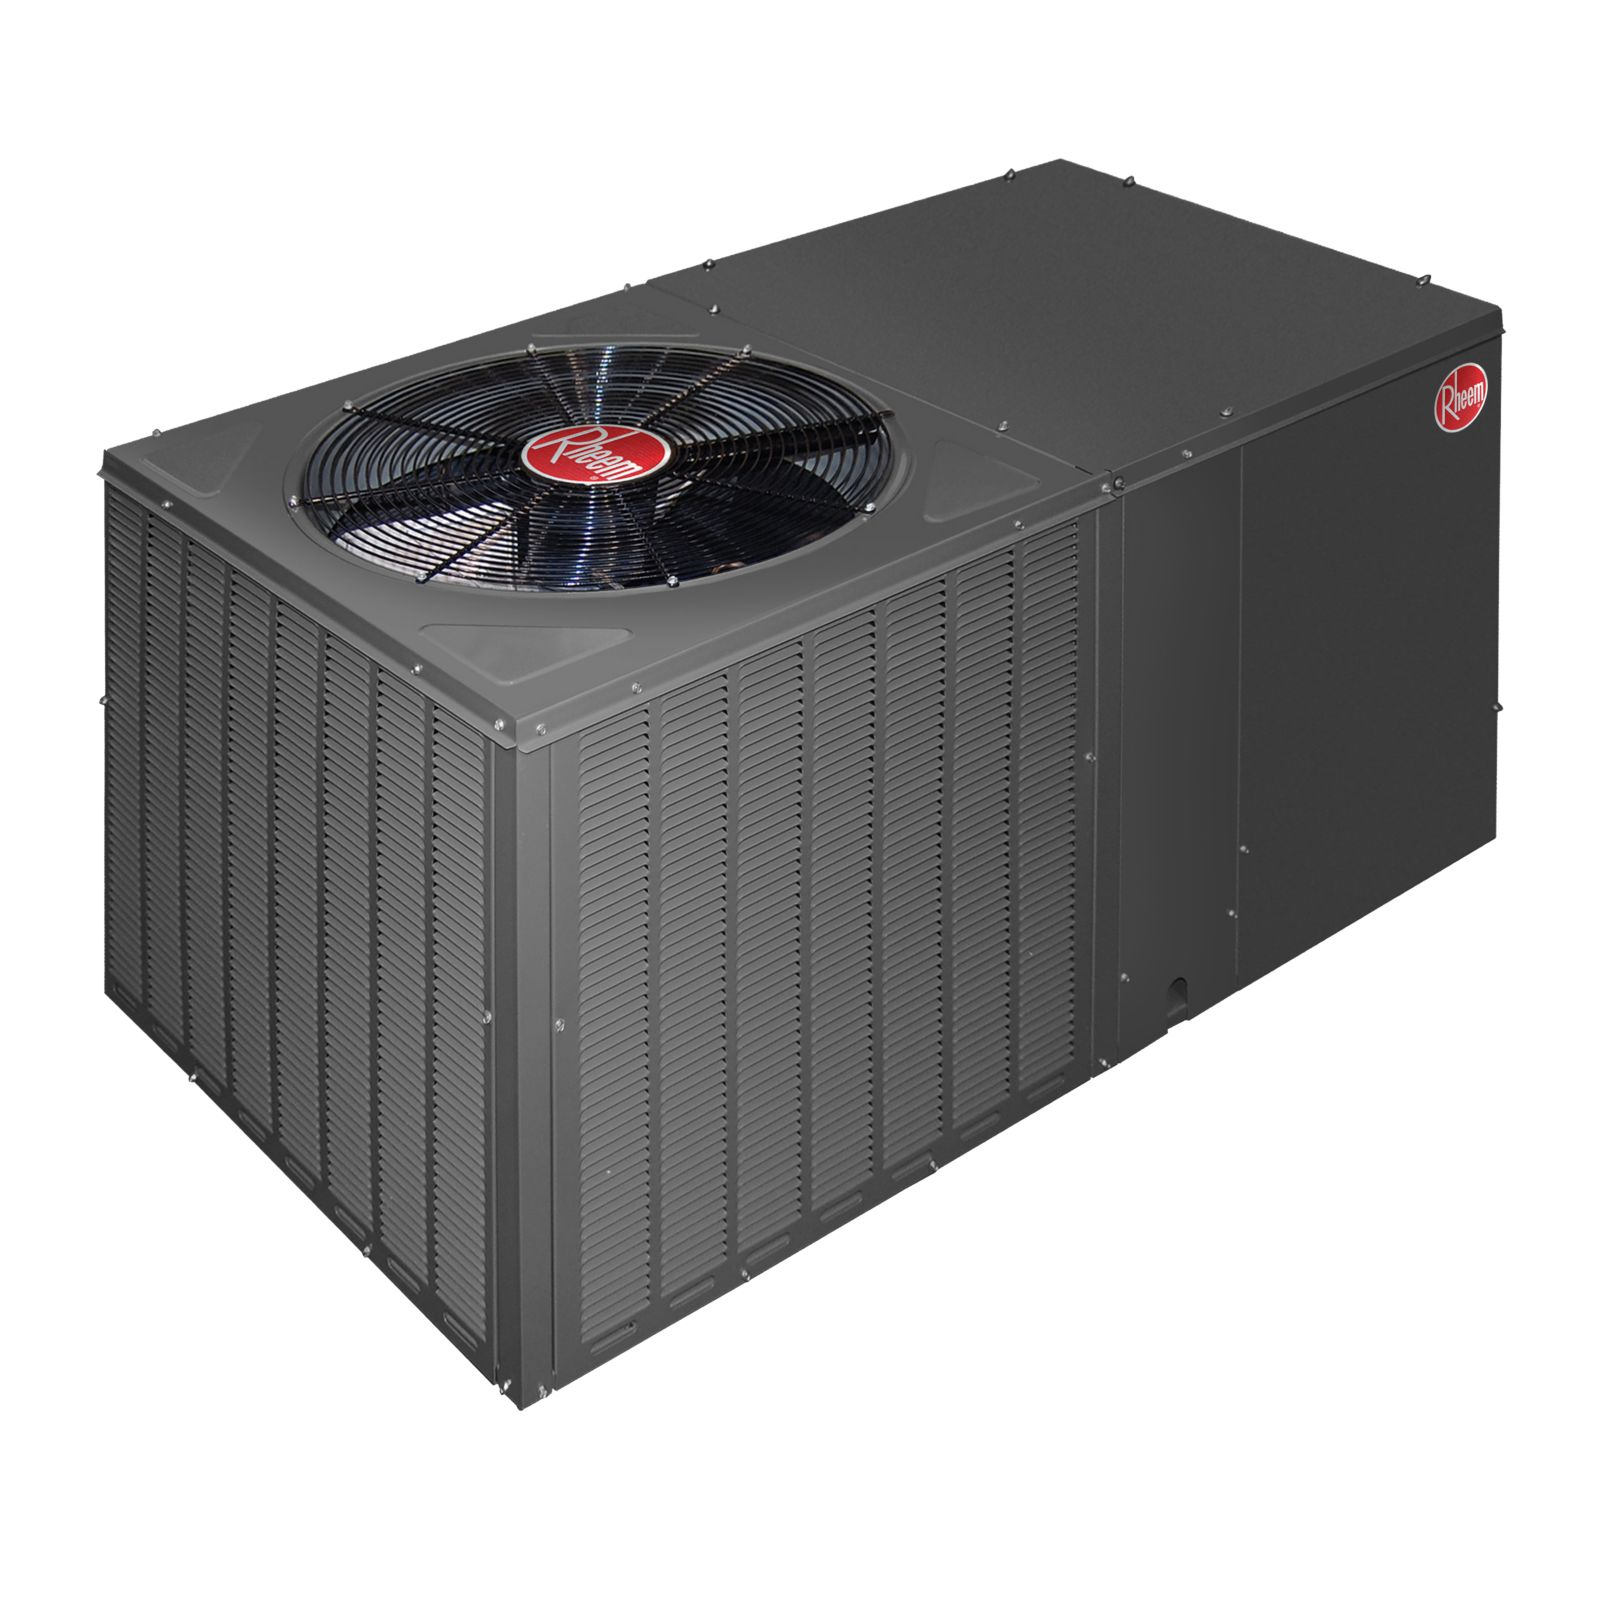 Rheem RQNM-A042JK000 - Classic 3 1/2 Ton, 13 SEER, Packaged Heat Pump With Horizontal Discharge, 208-230 V, 1 Ph, 60 Hz